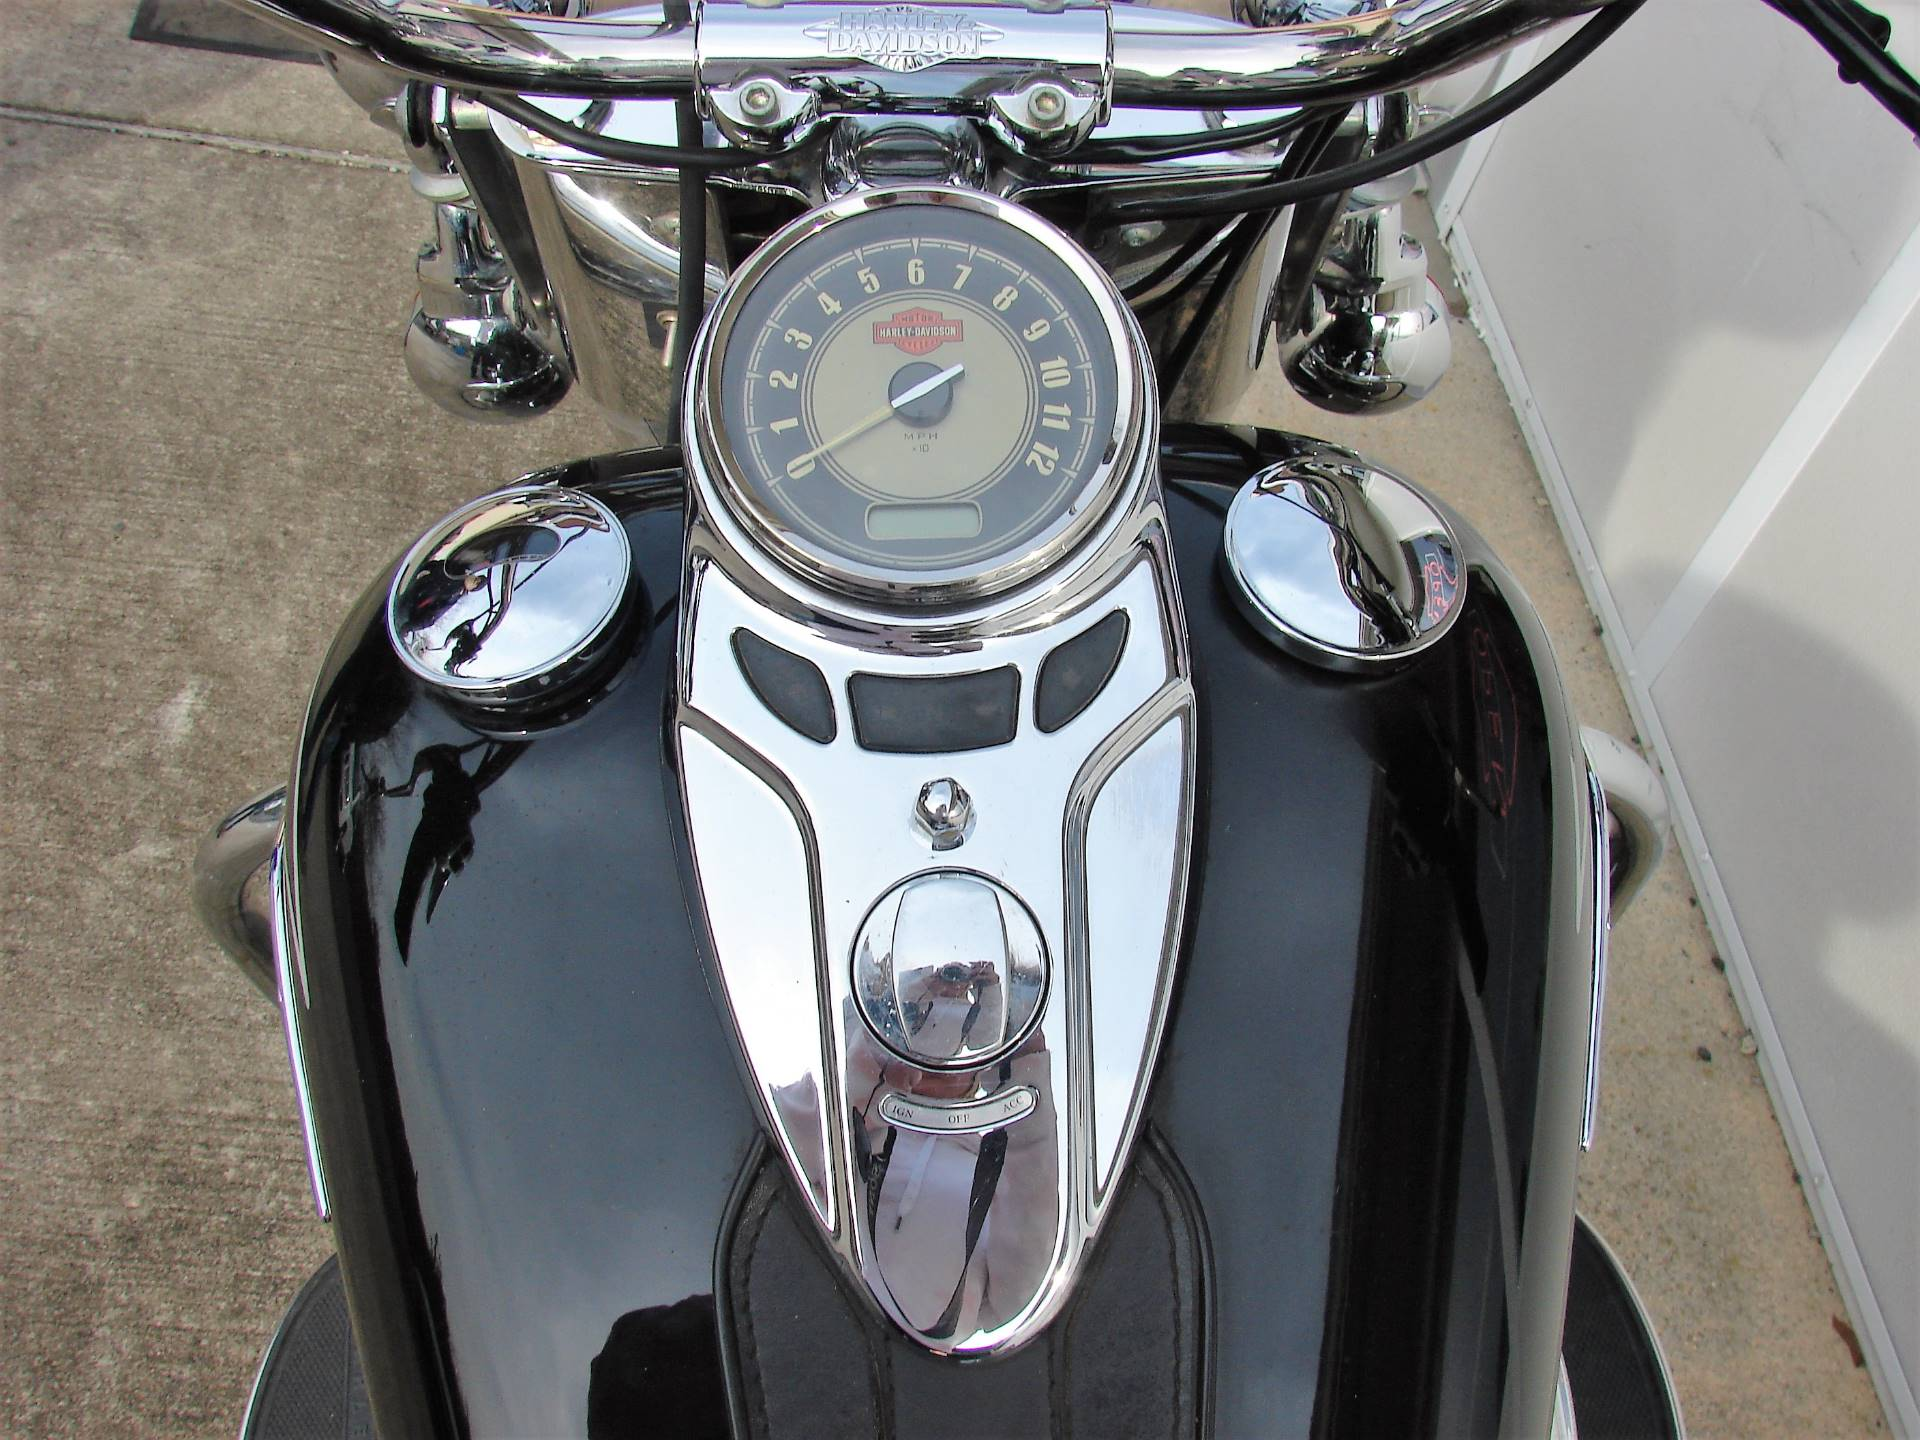 2011 Harley-Davidson FLSTC Heritage Softail in Williamstown, New Jersey - Photo 6